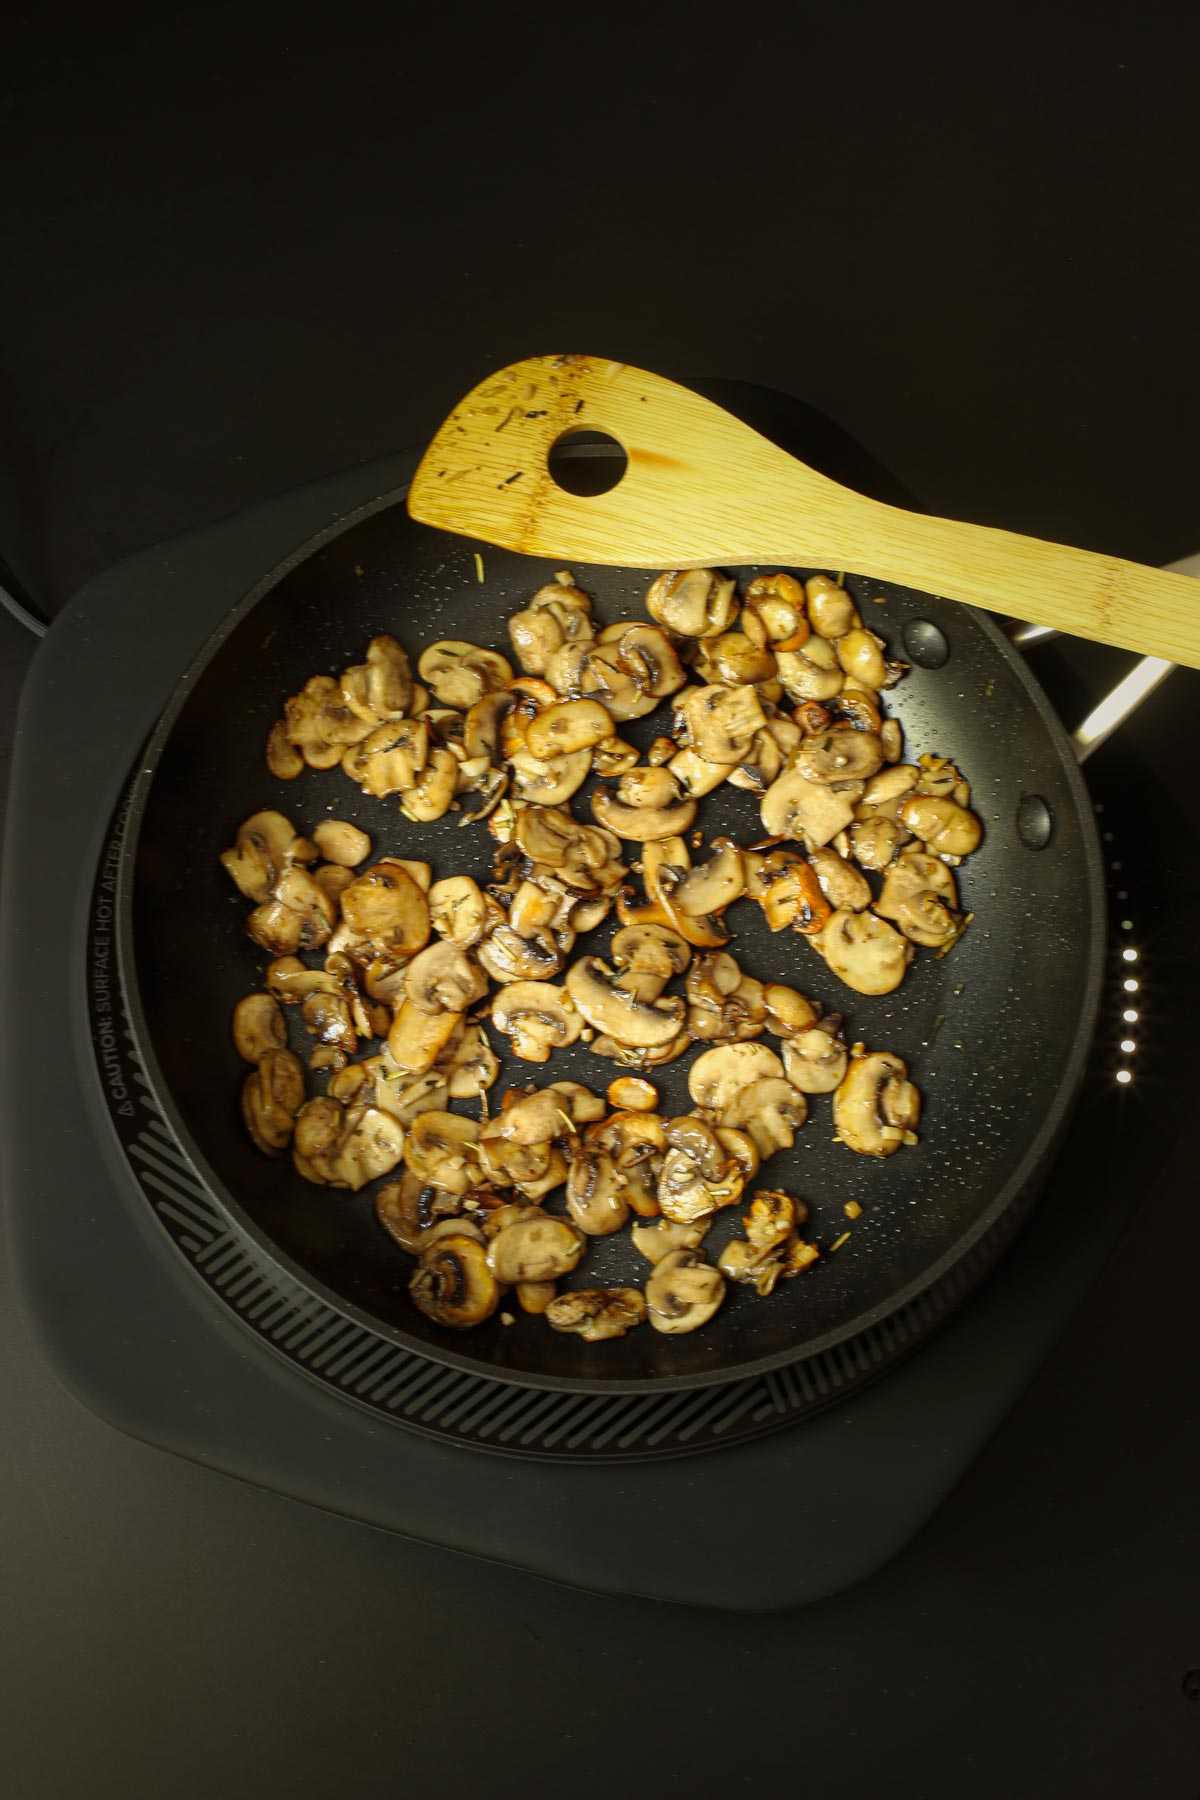 sauteed mushrooms in the skillet.